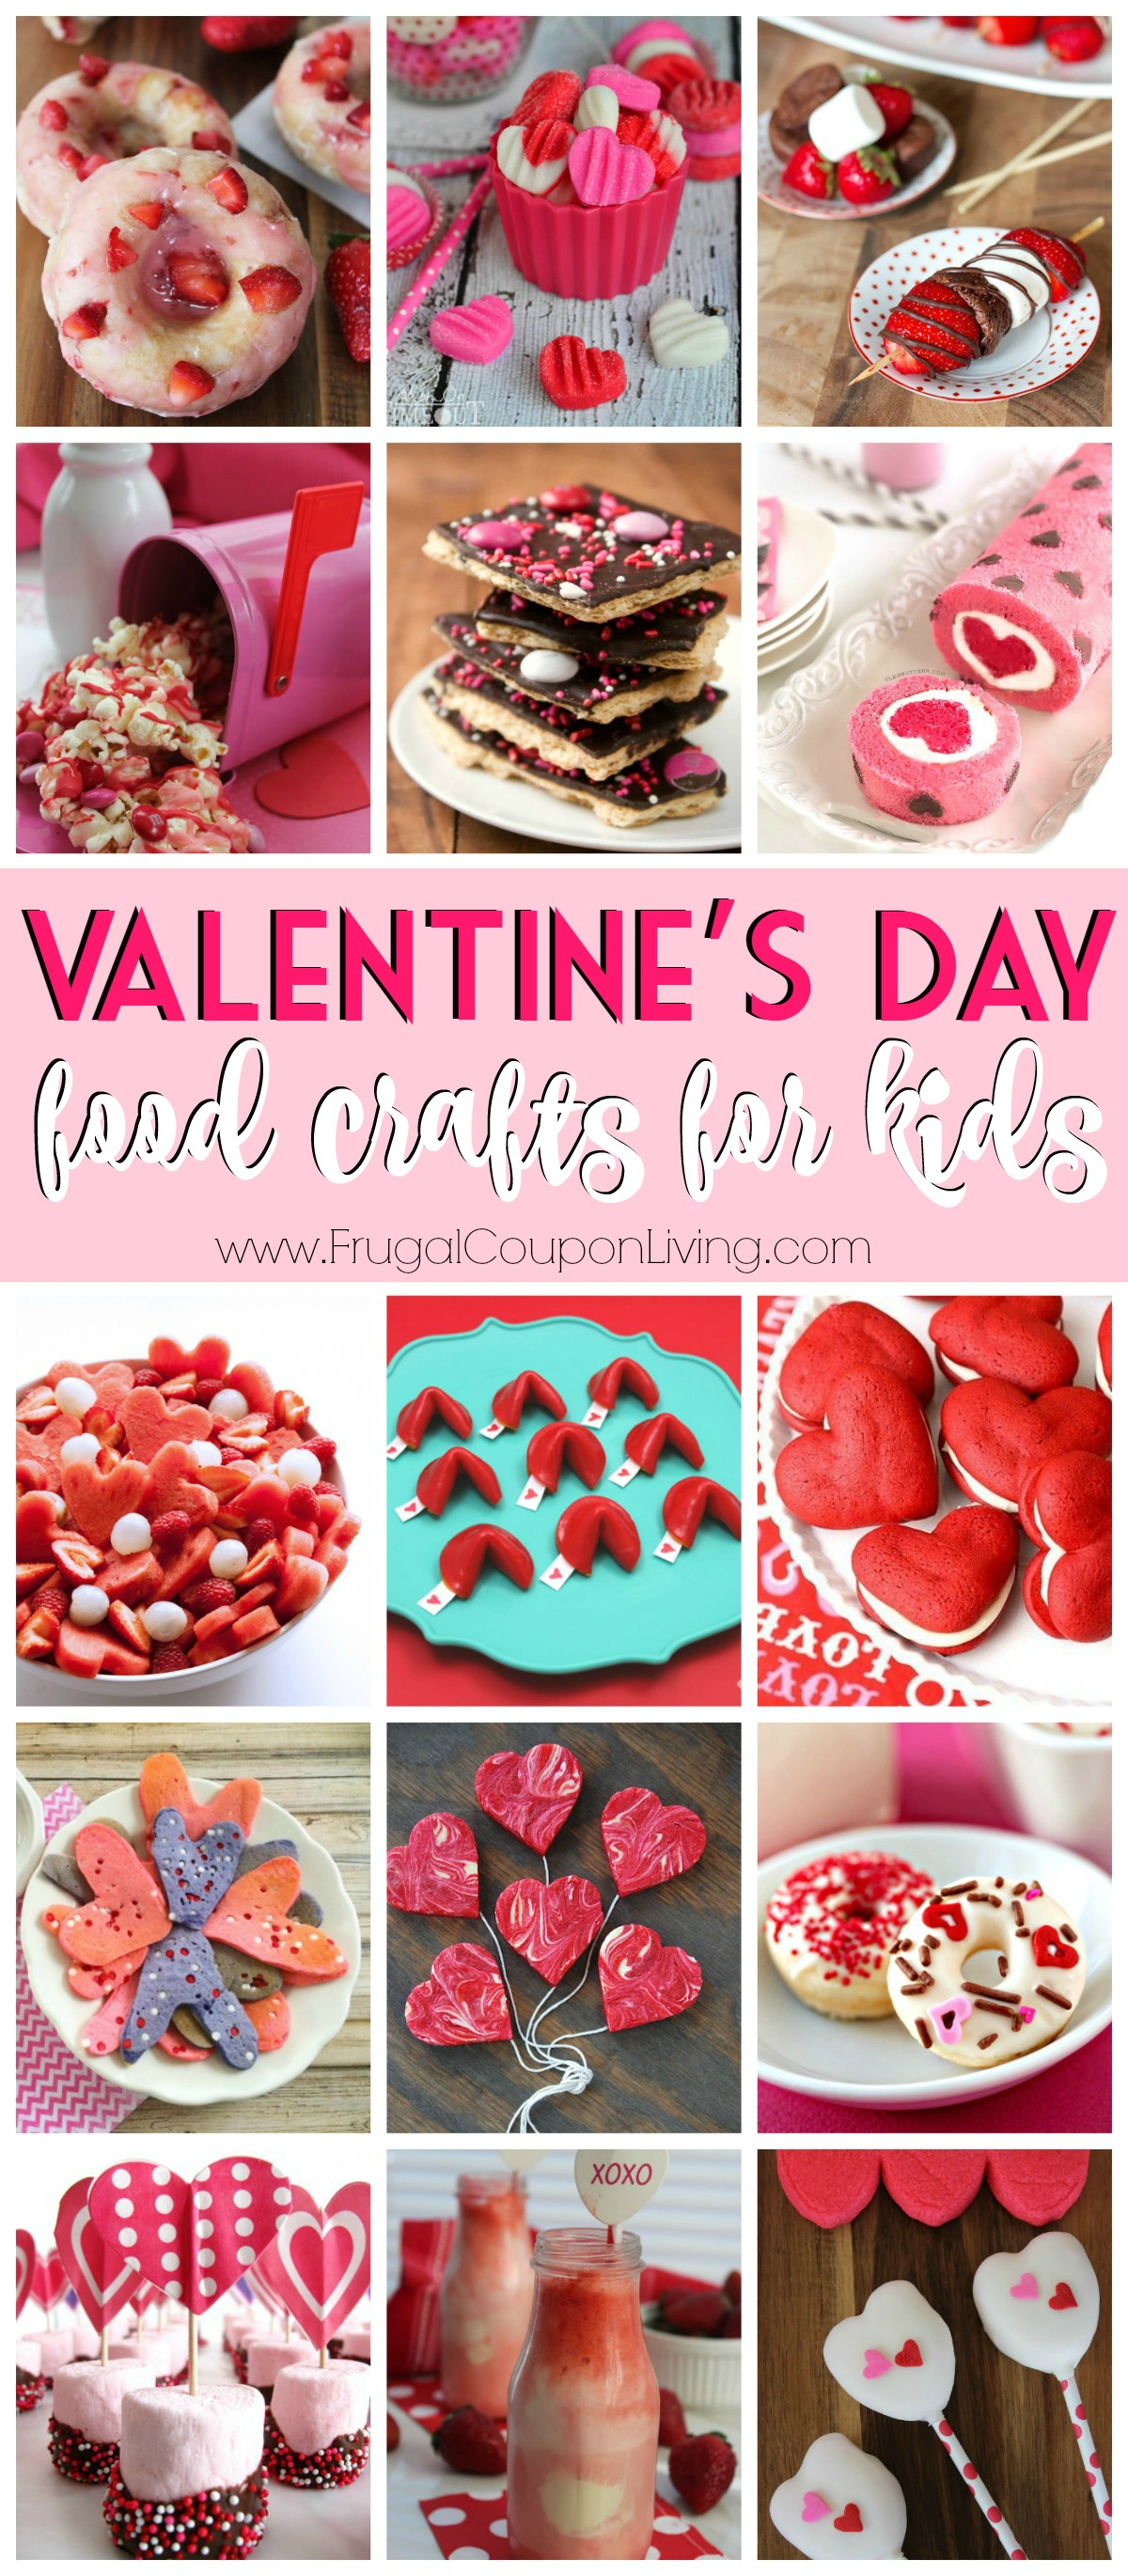 Valentines-Day-Food-Crafts-for-Kids-Frugal-Coupon-Living